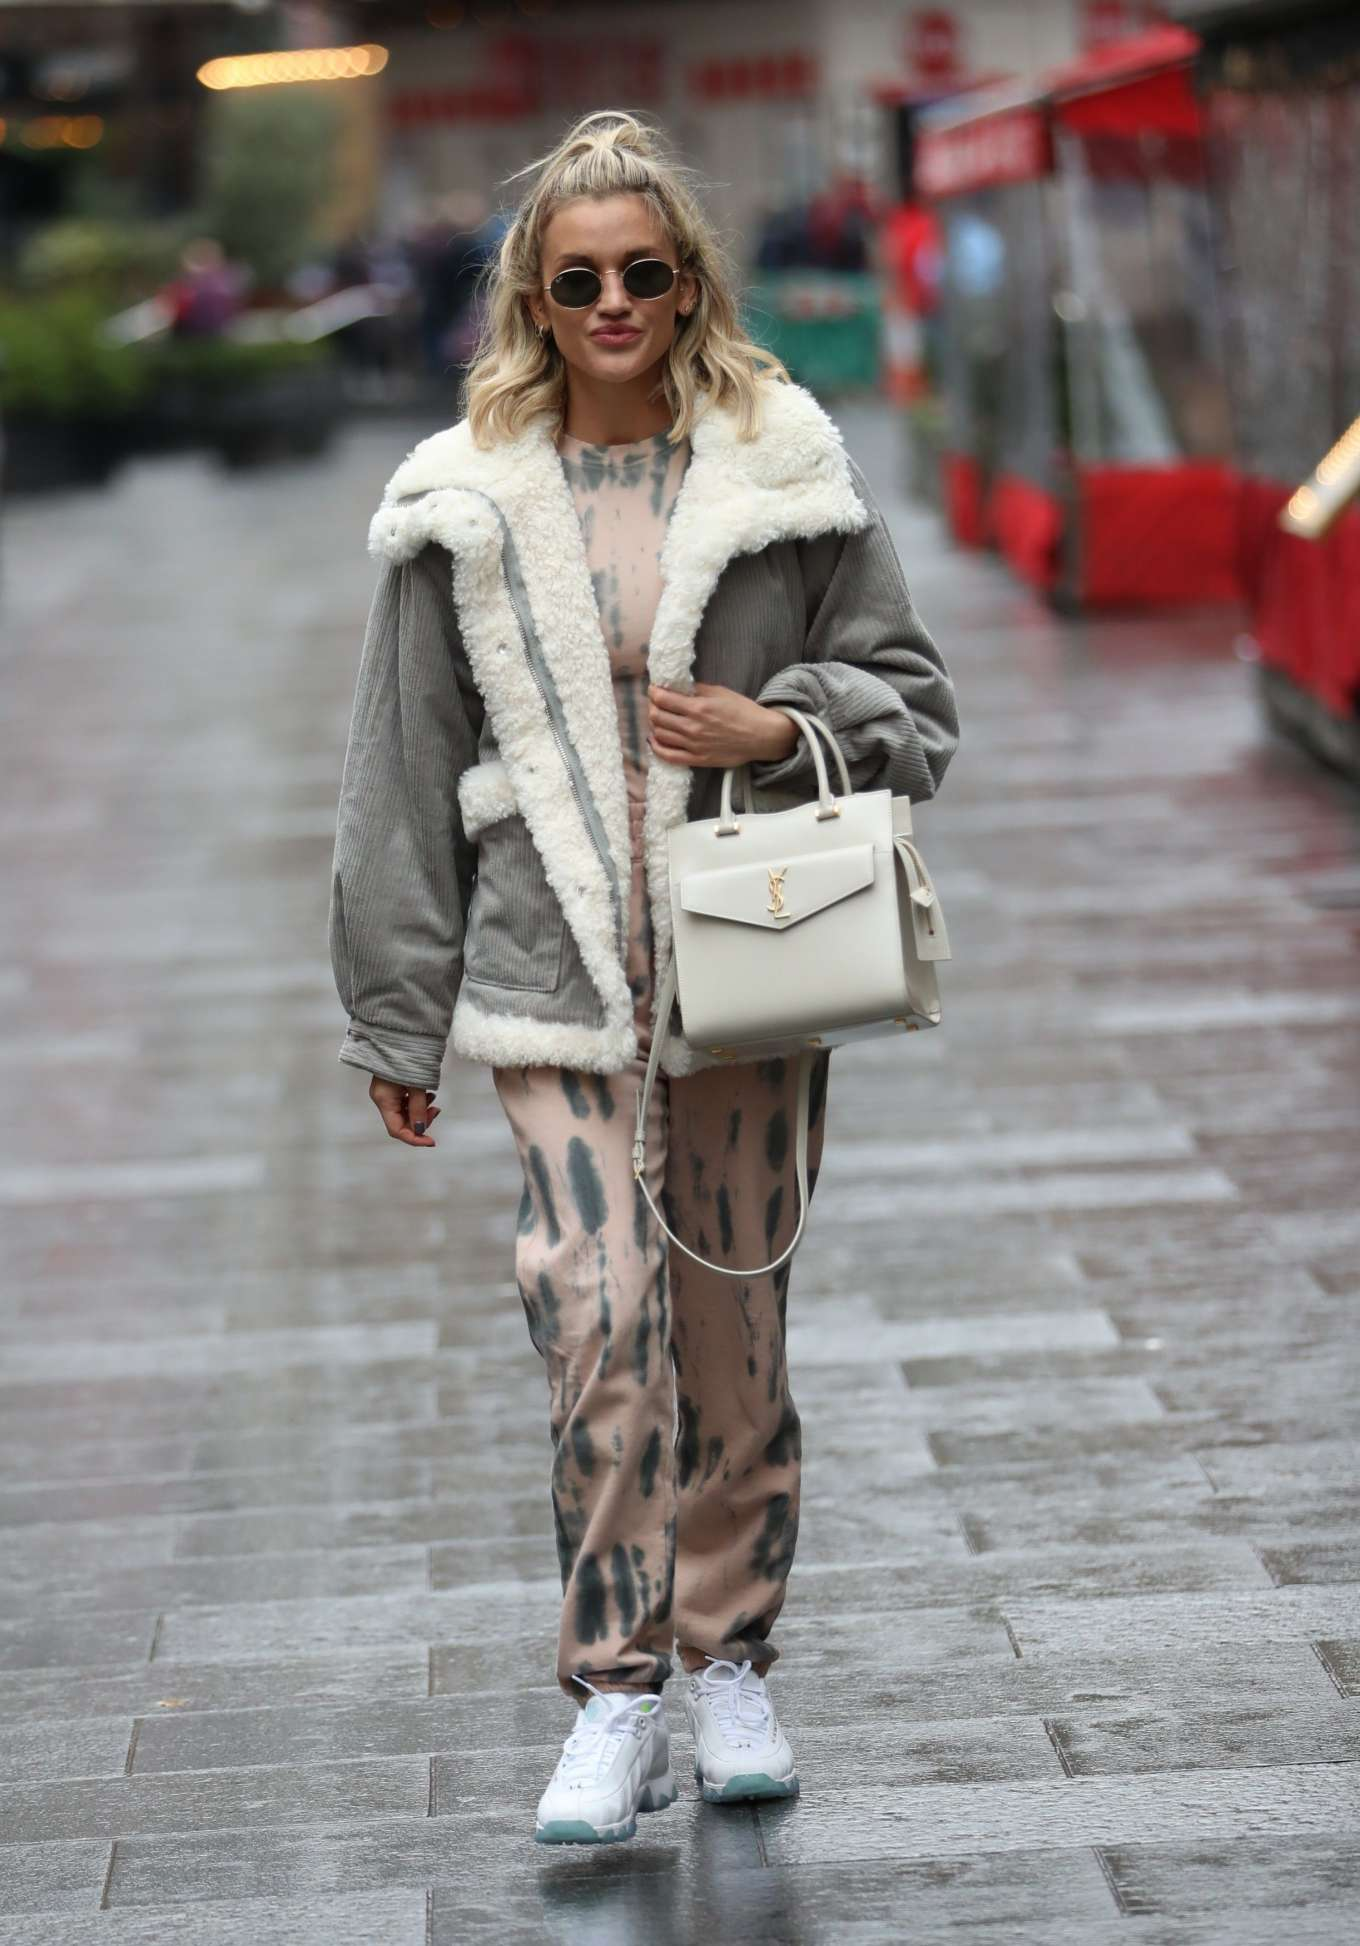 Ashley Roberts - Heads to Pussycat Doll rehearsals in London